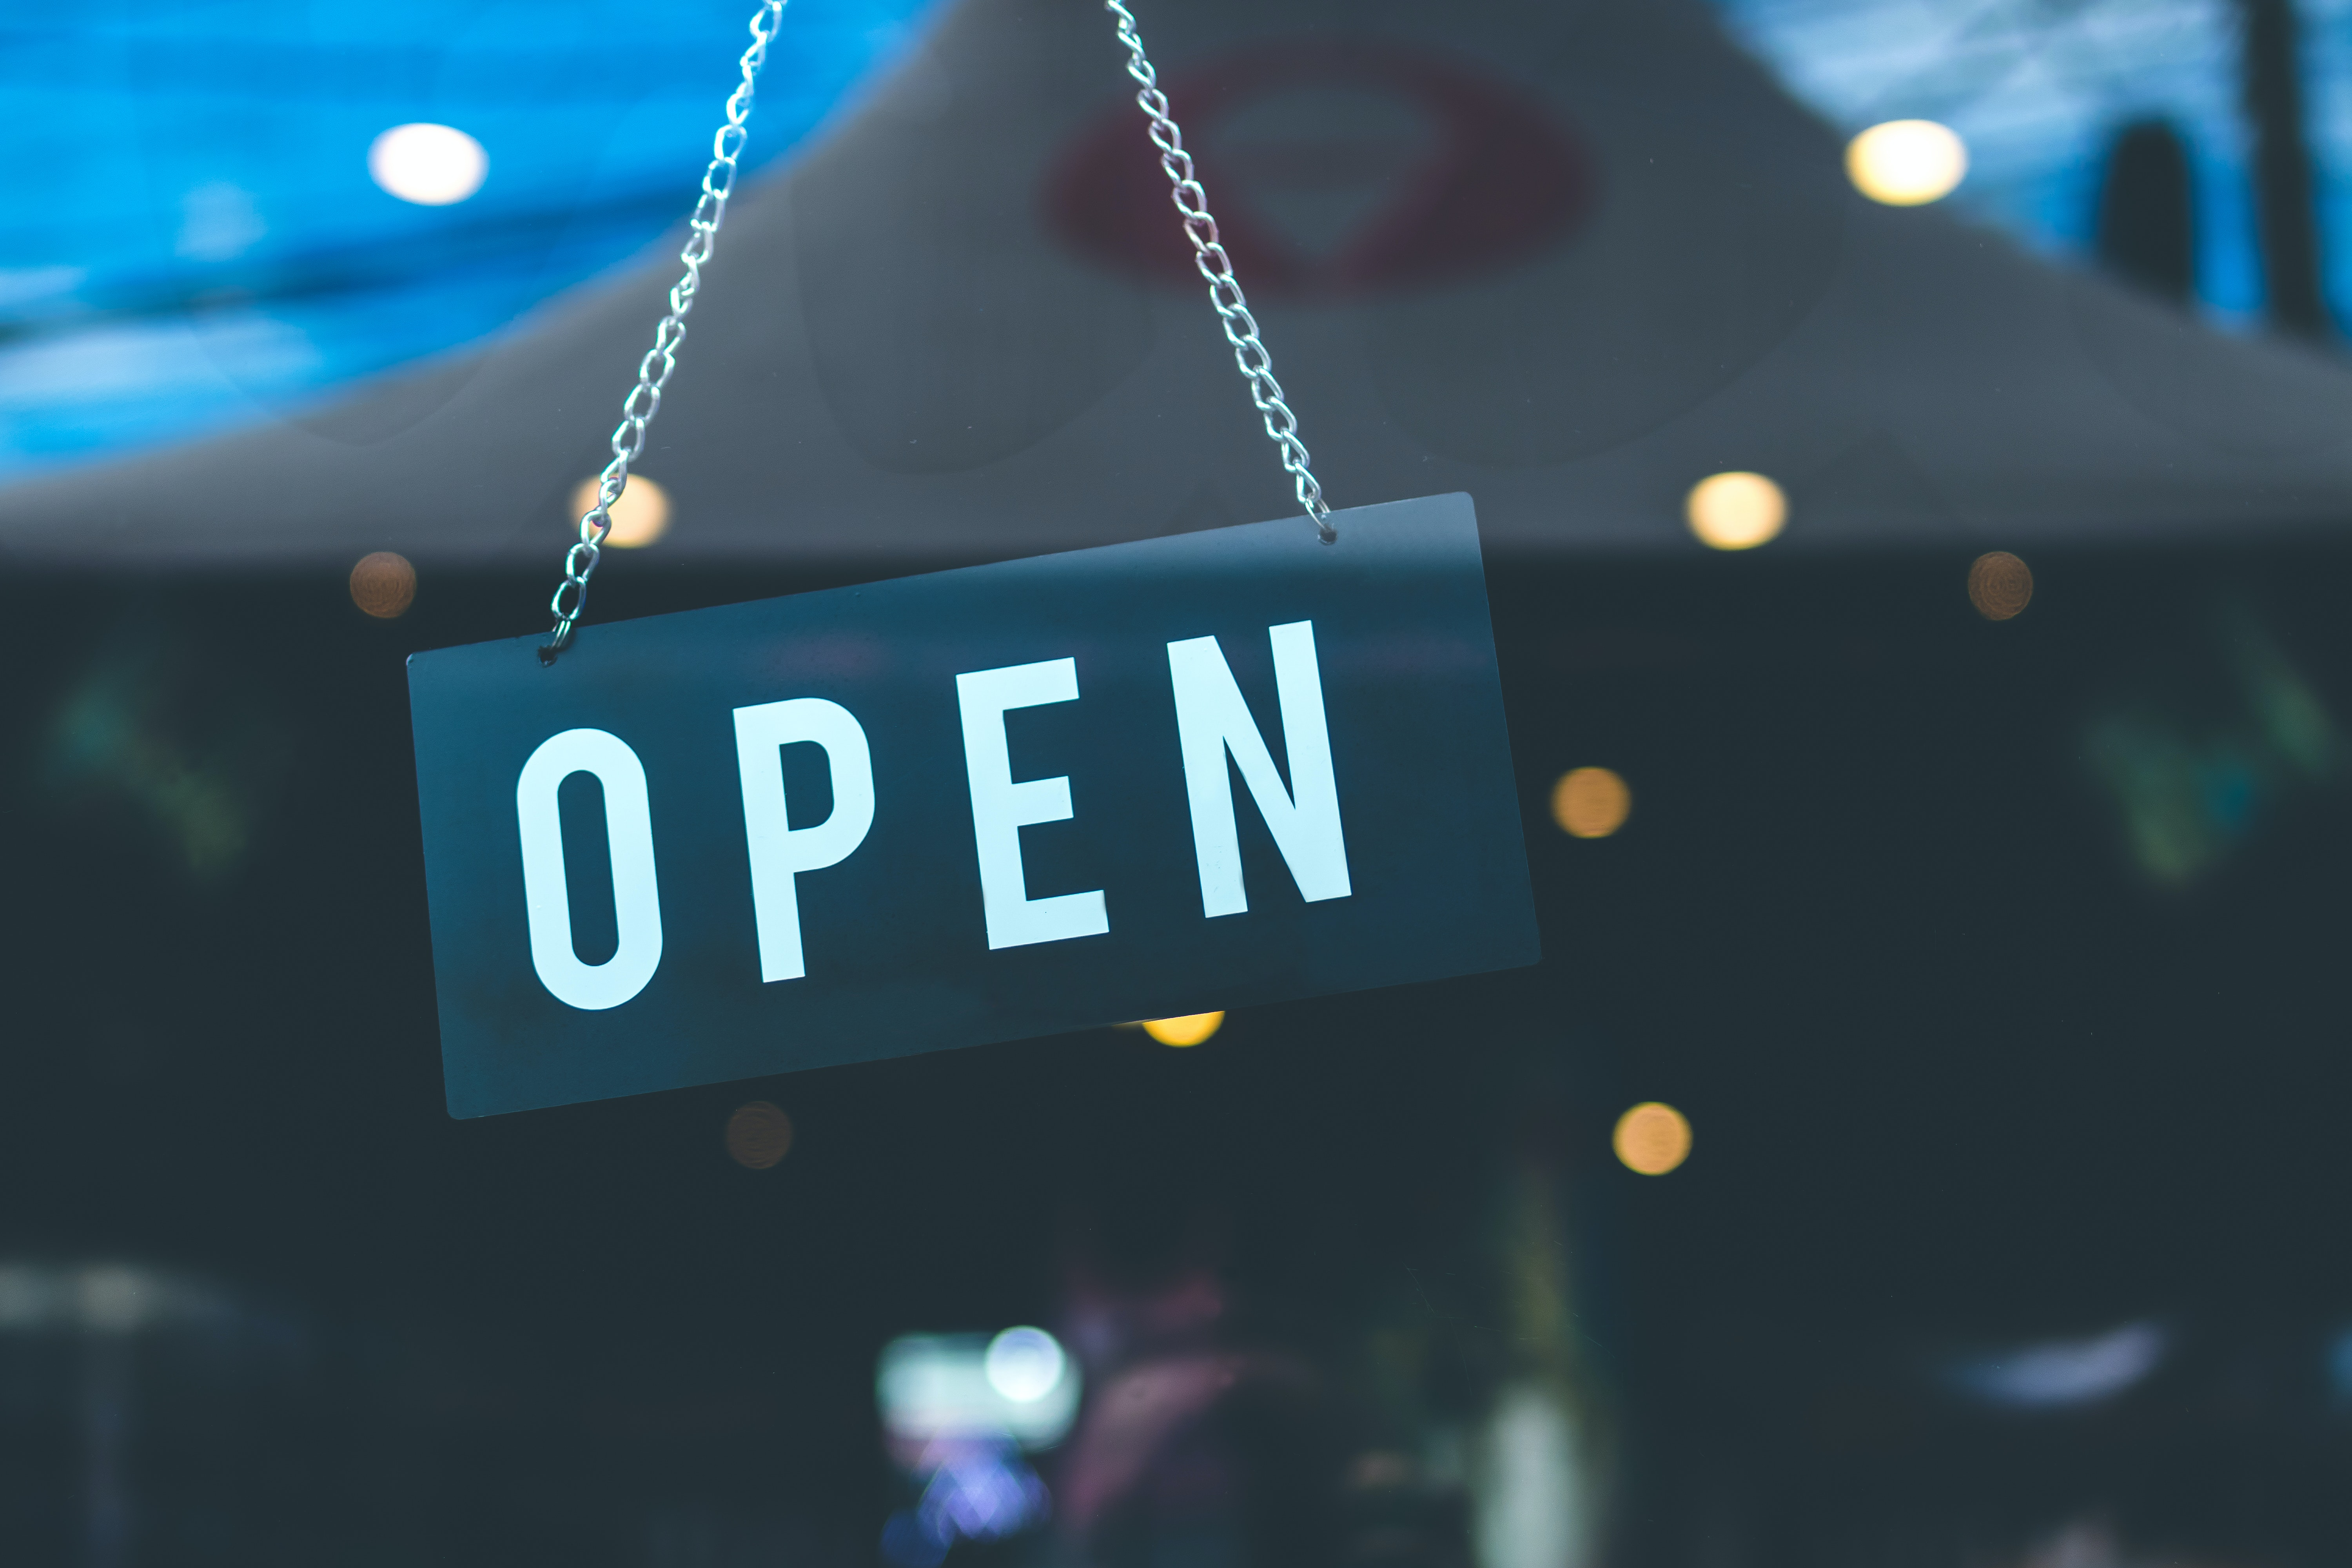 reopening the workplace - open for business